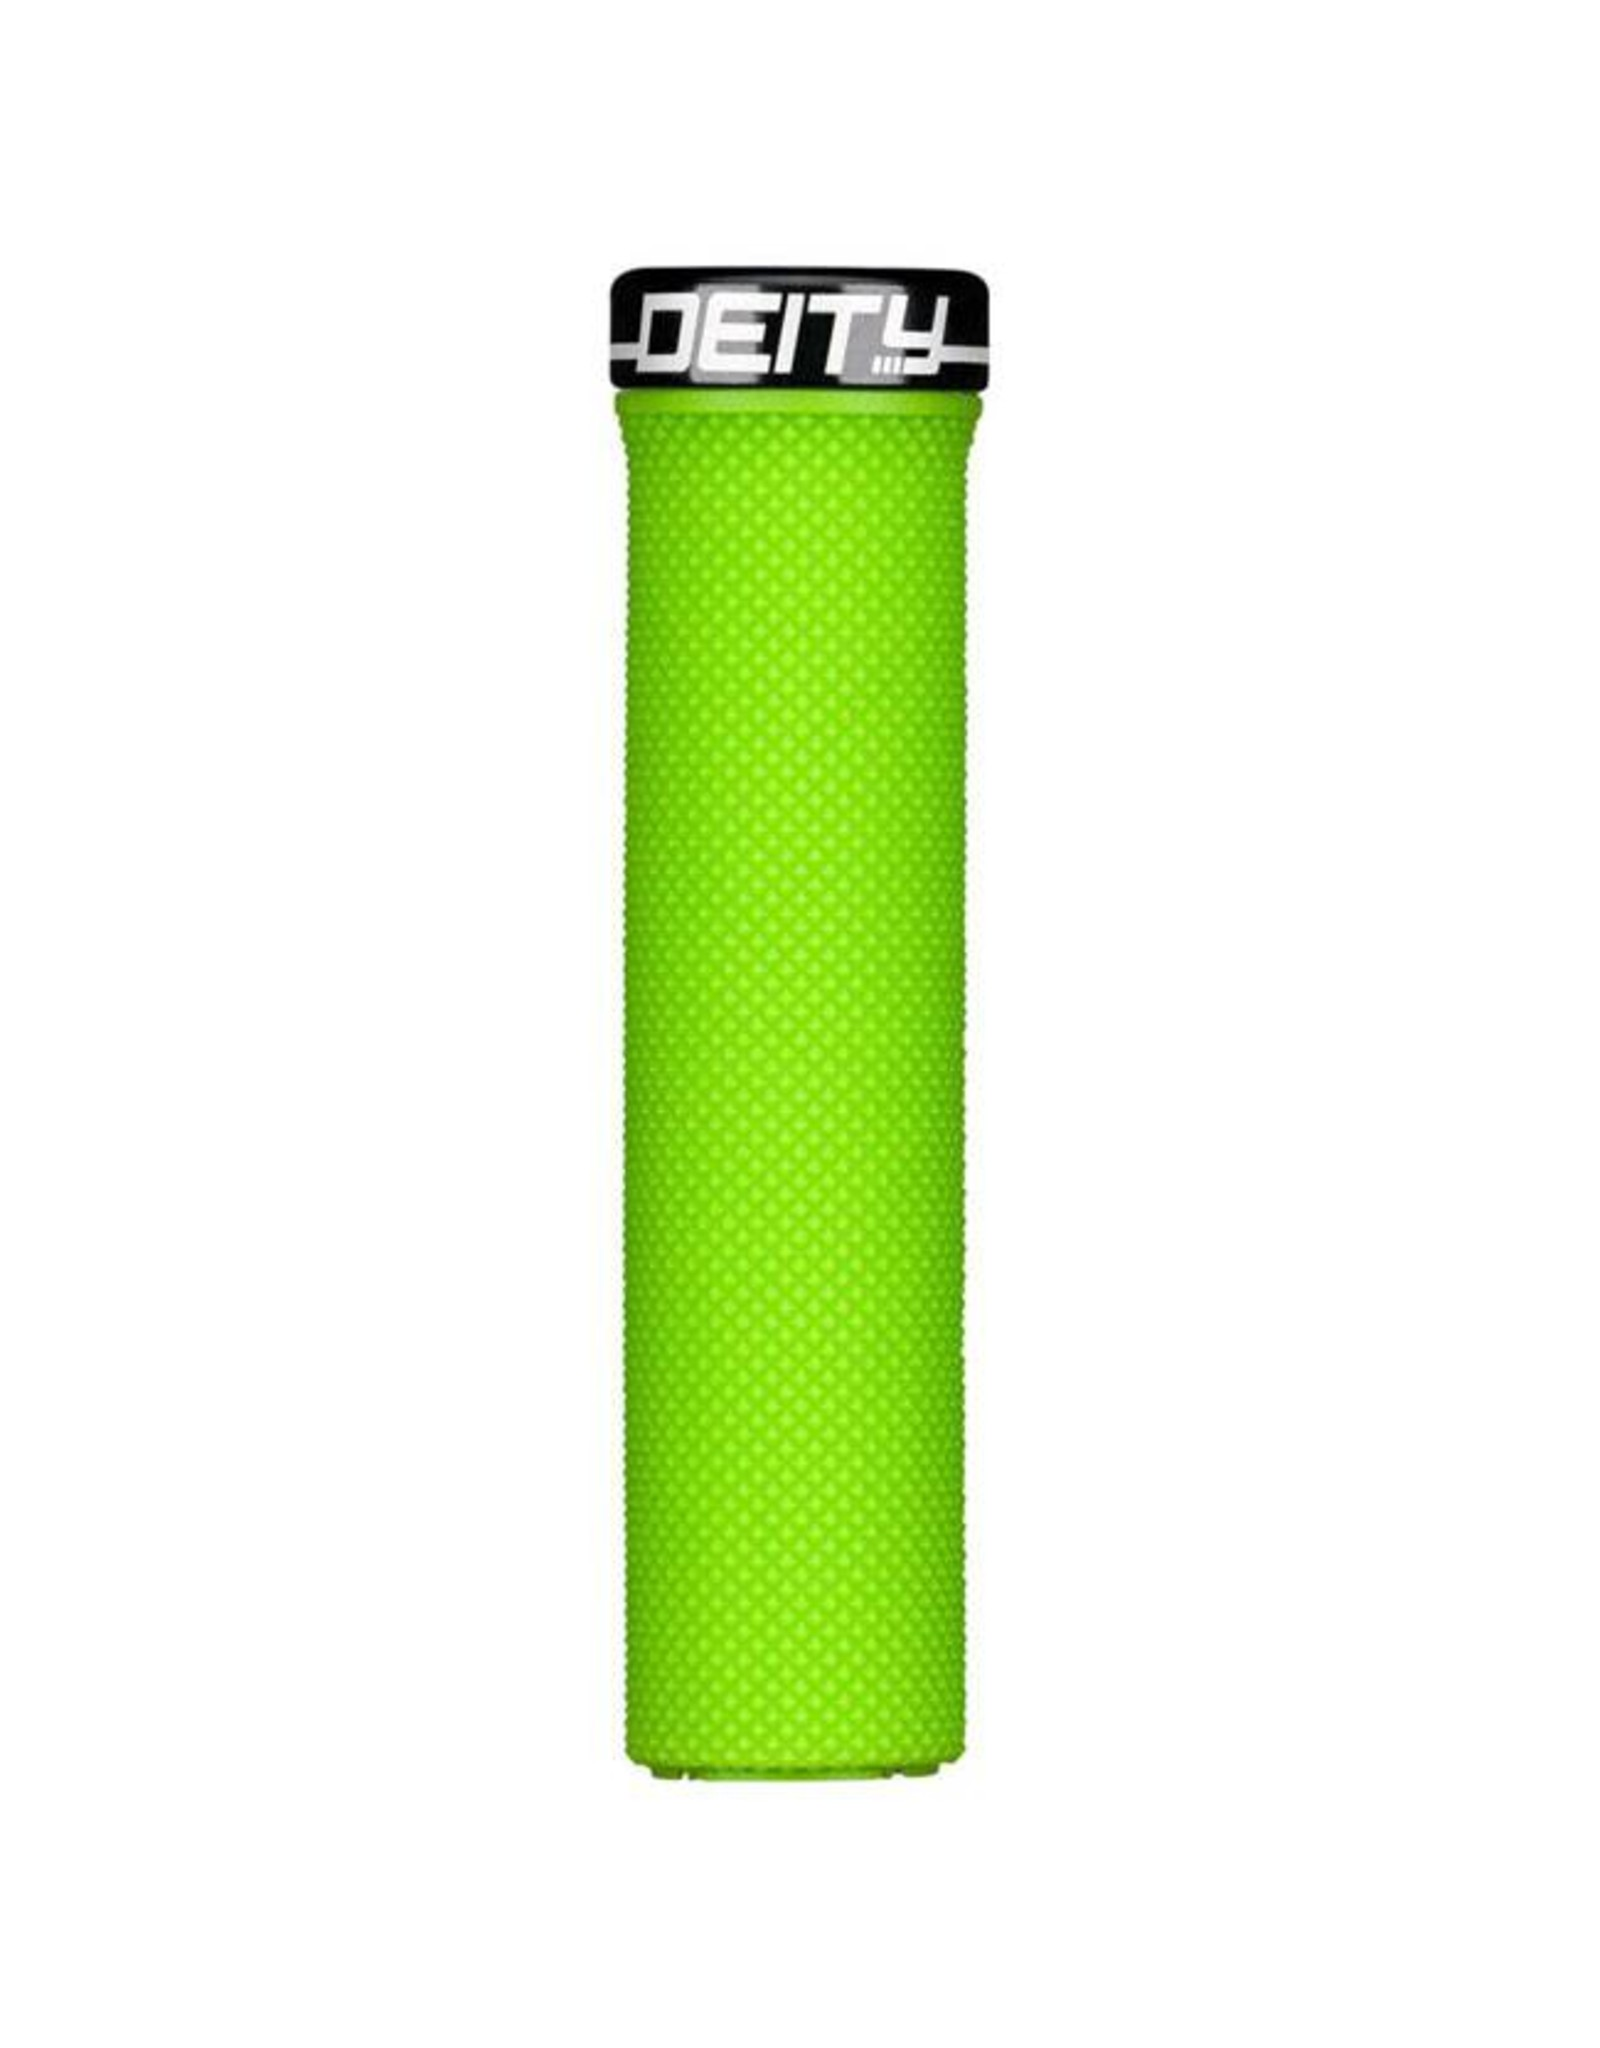 Deity Components Deity Waypoint Lock-on Grips: Green with Black Clamp